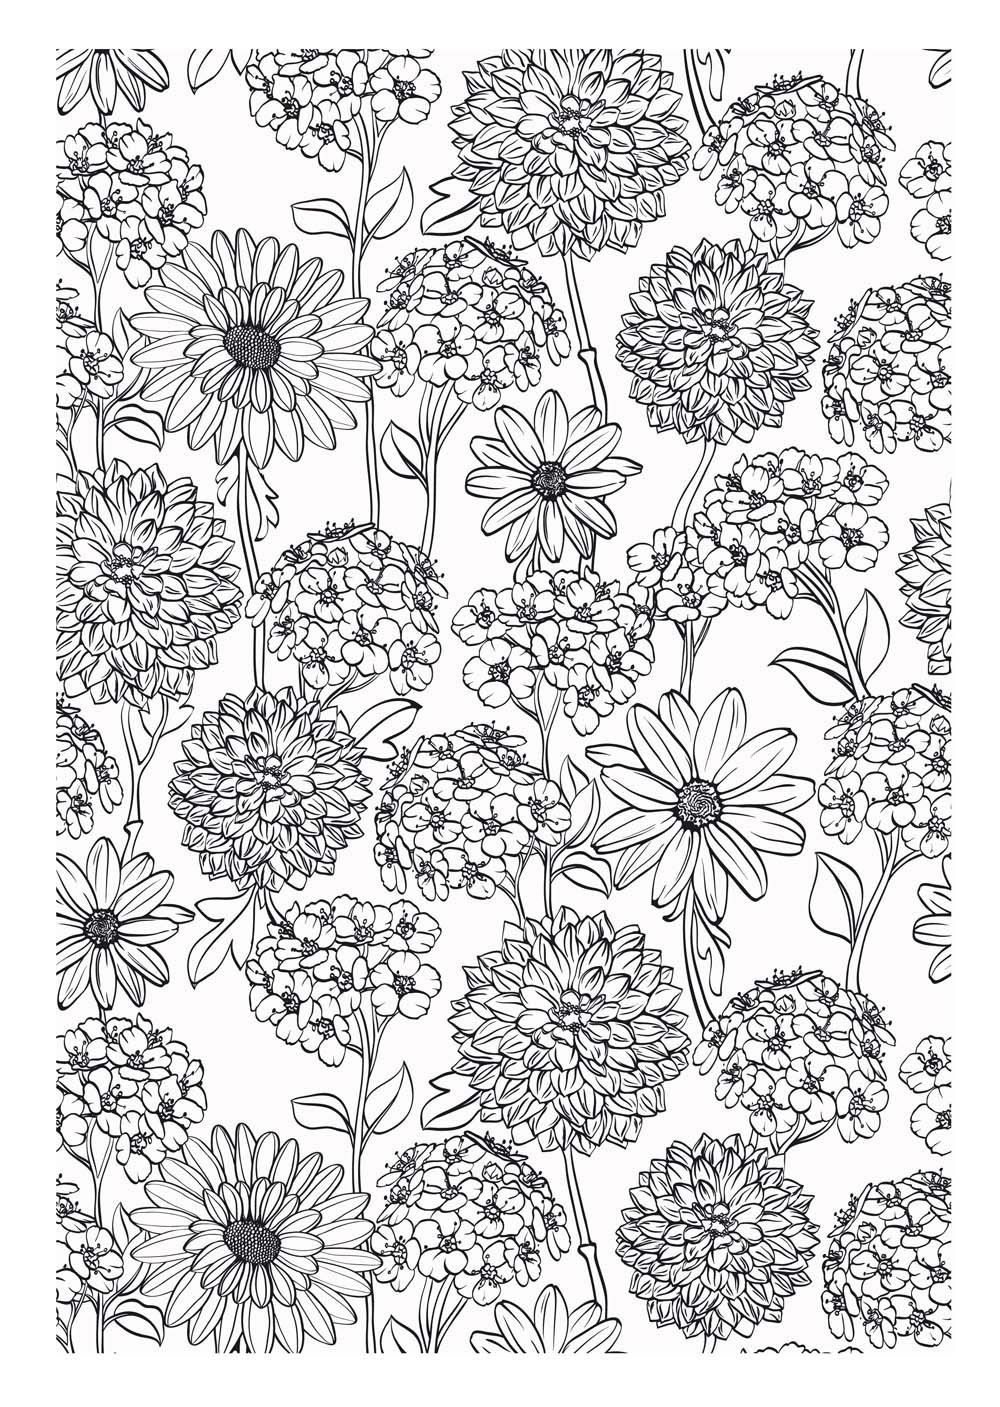 Free coloring pages for june - Discover Our Free Adult Coloring Pages Various Themes Artists Difficulty Levels The Perfect Anti Stress Activity For You